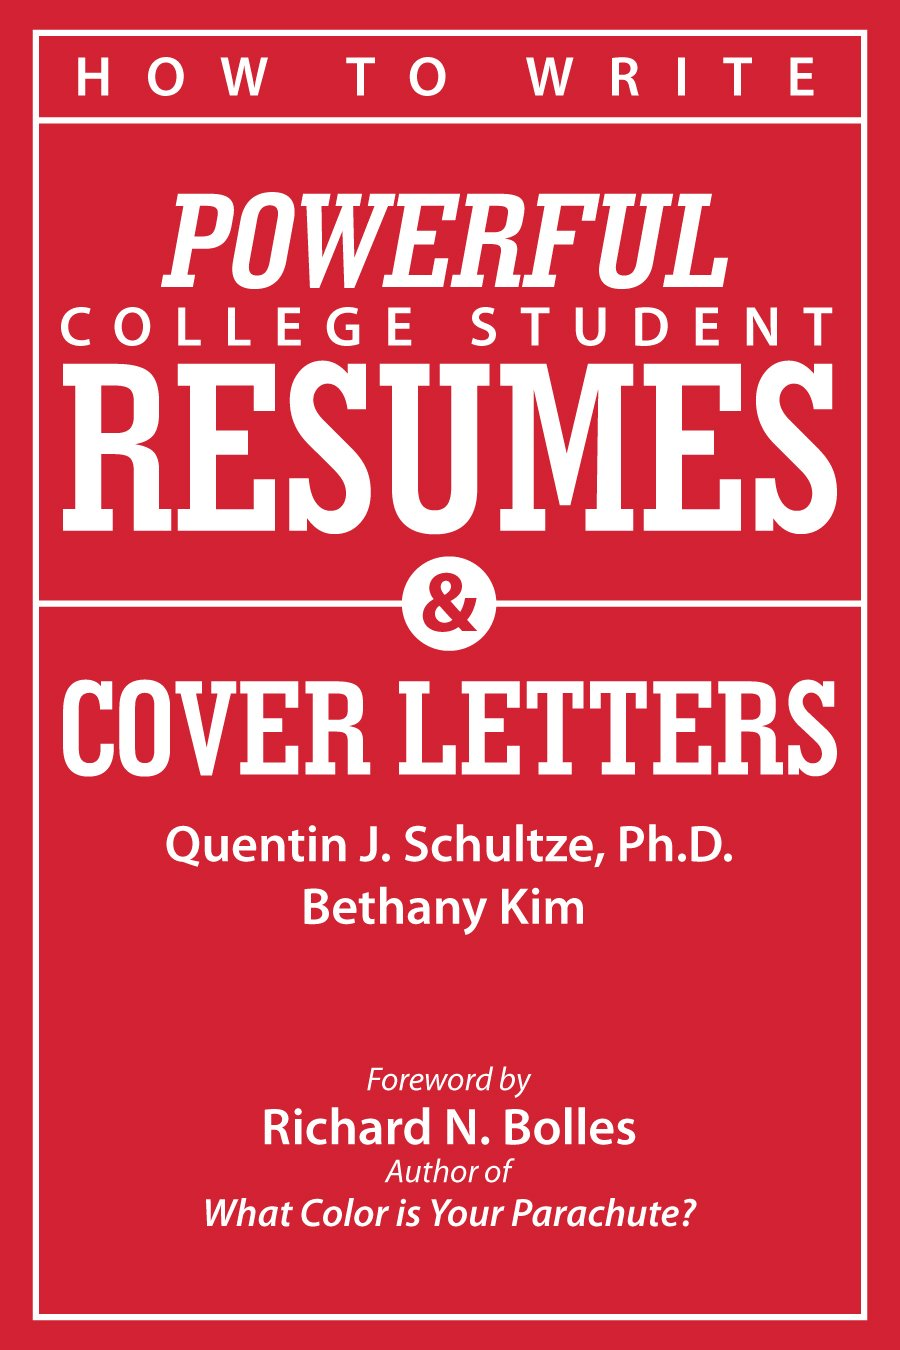 How to Write Powerful College Student Resumes and Cover Letters ...